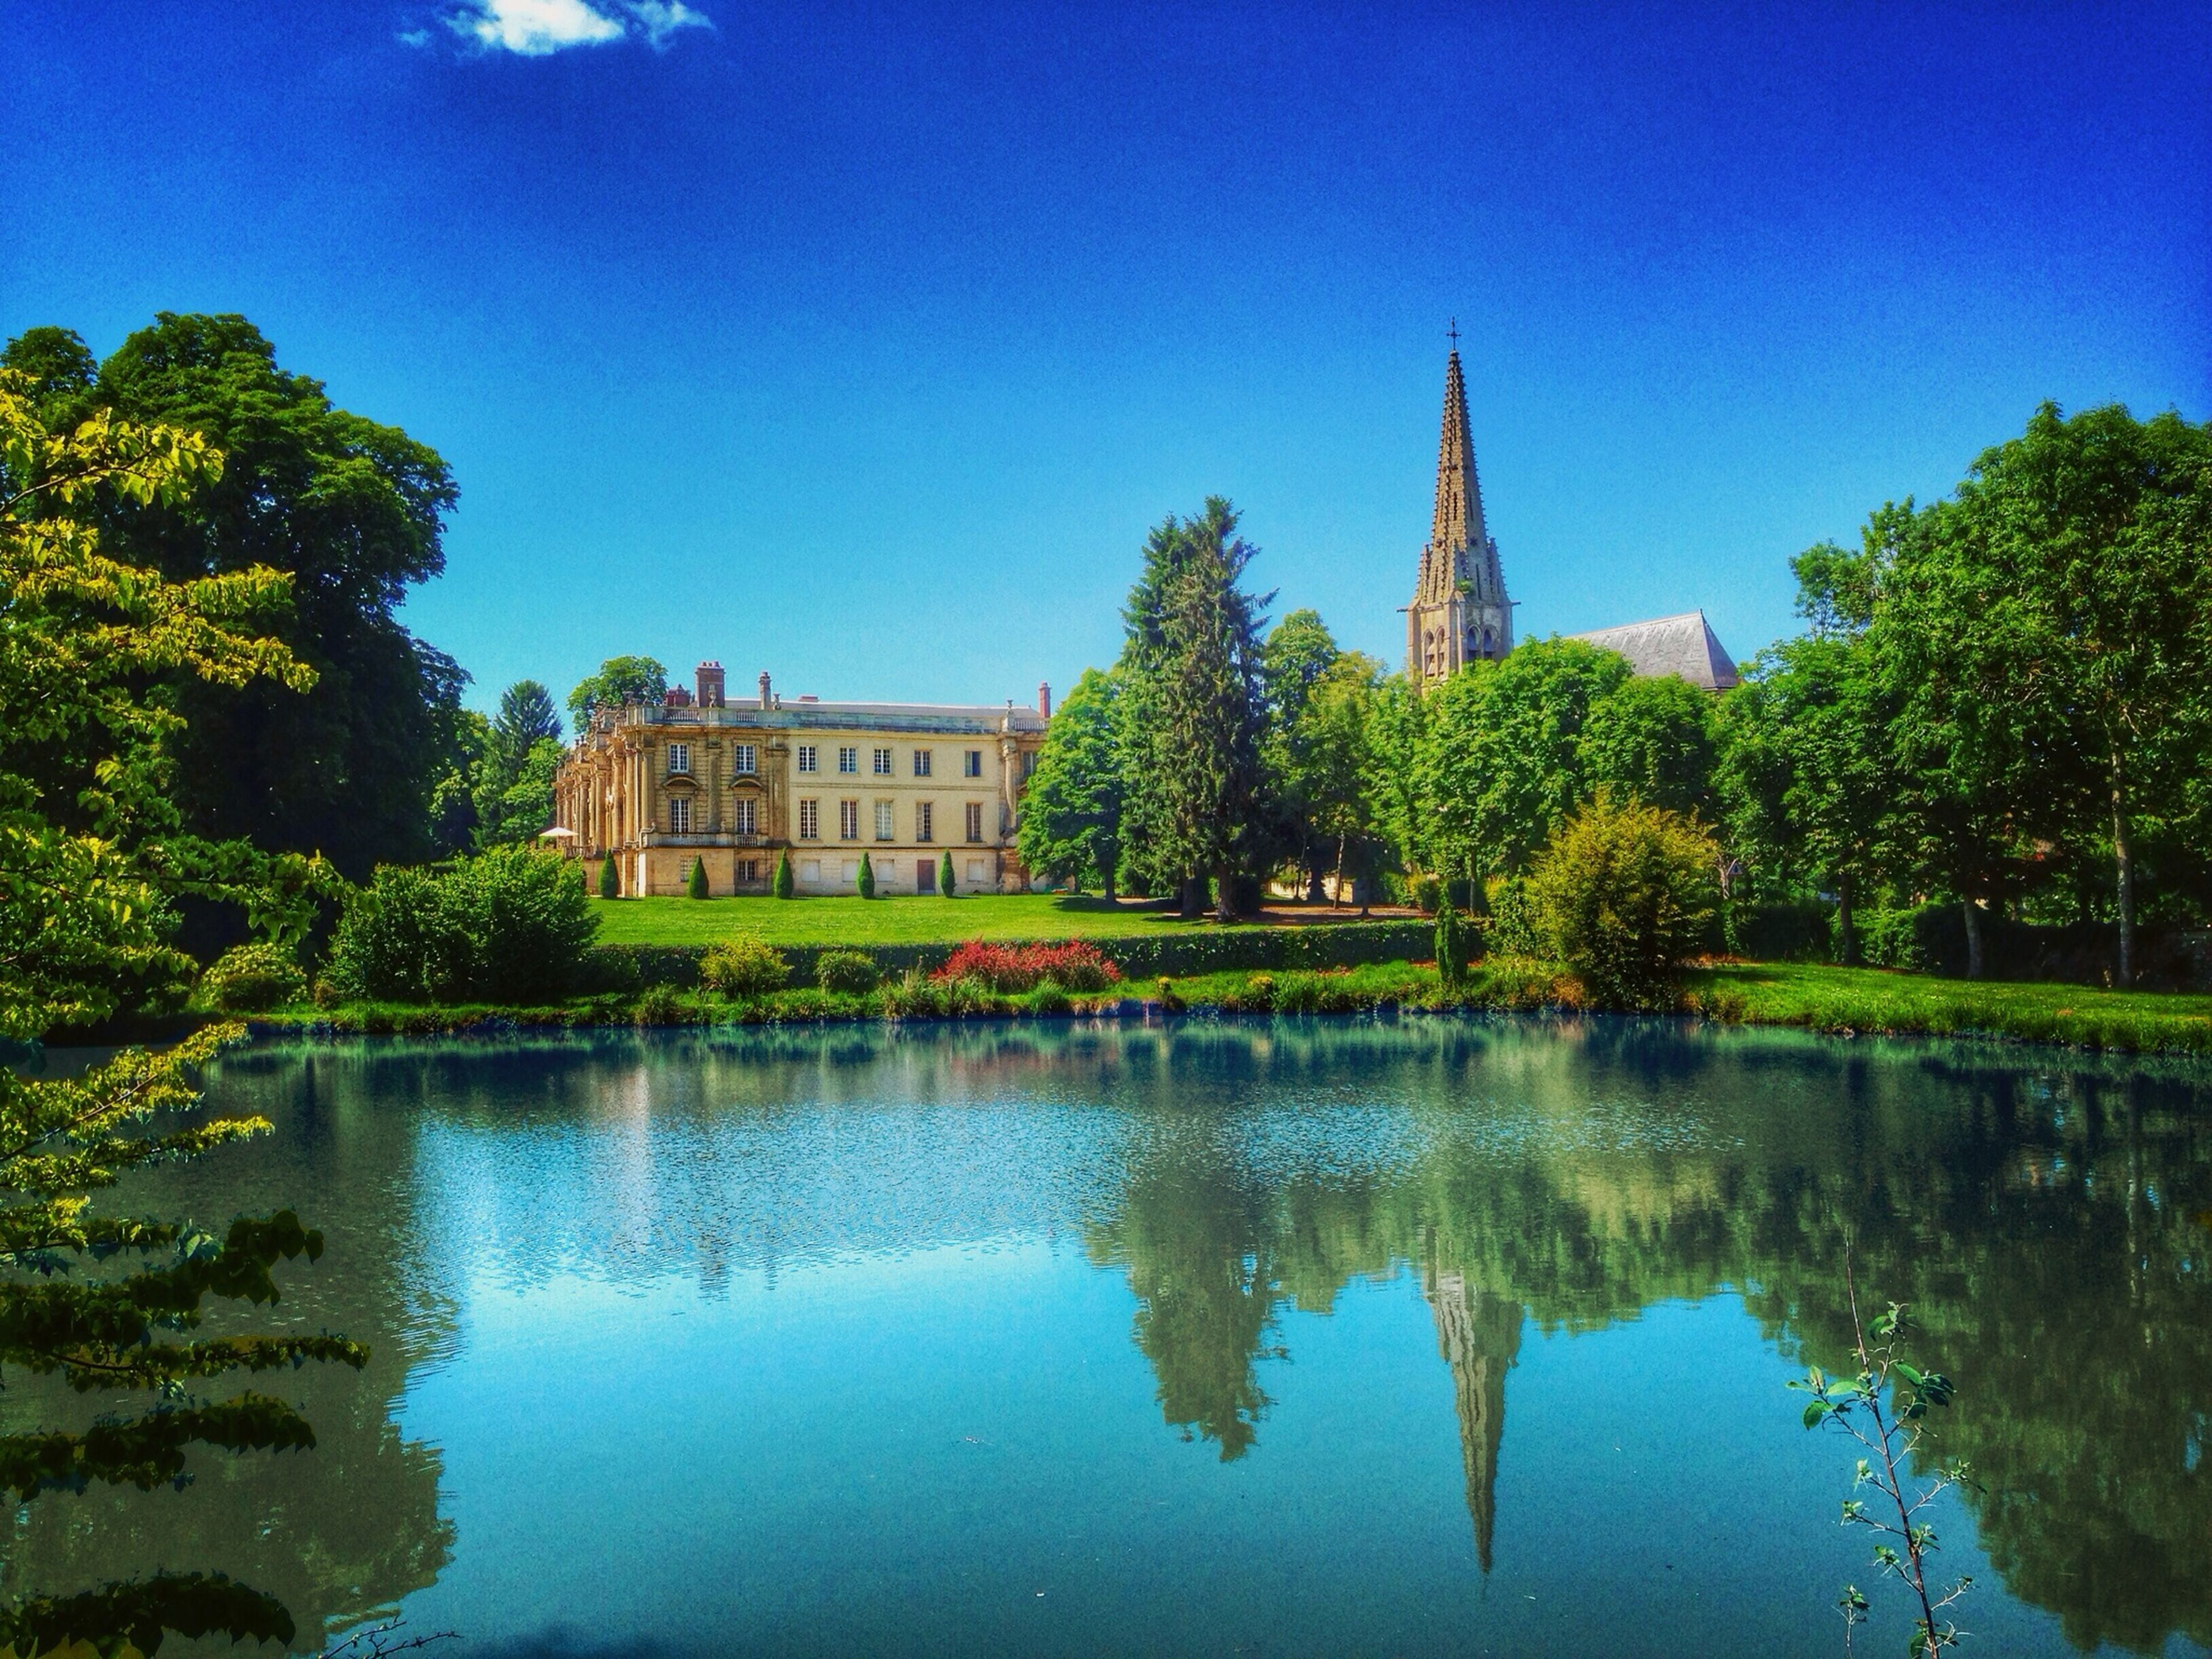 architecture, building exterior, built structure, reflection, tree, water, blue, waterfront, clear sky, lake, pond, sky, standing water, travel destinations, religion, famous place, tower, outdoors, river, place of worship